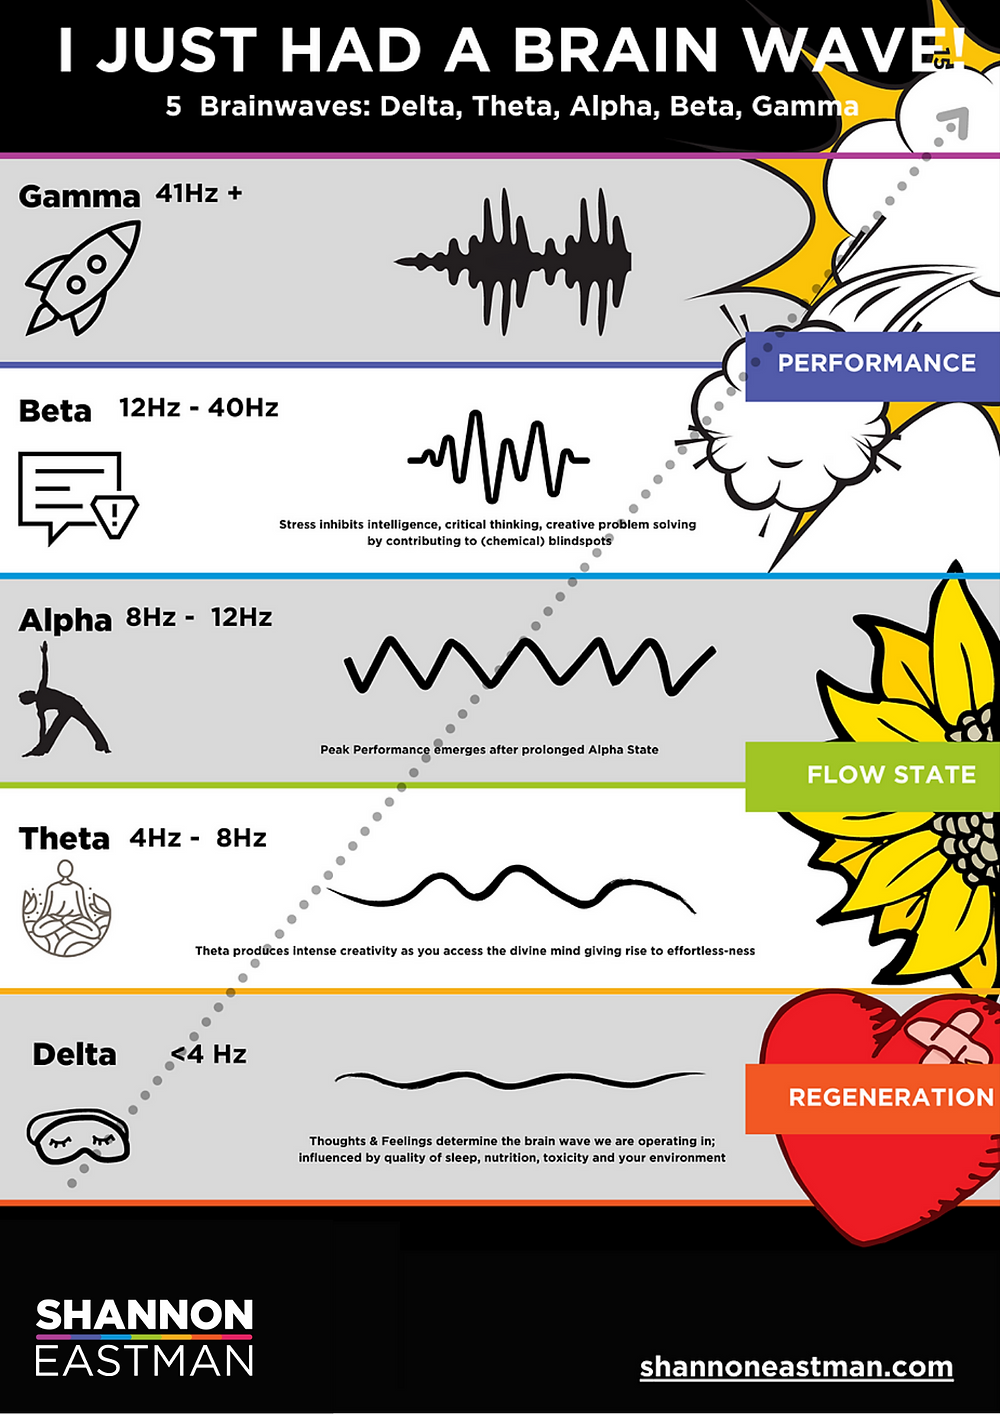 [INFOGRAPHIC] Flow State and Peak Performance using 5 Brainwaves